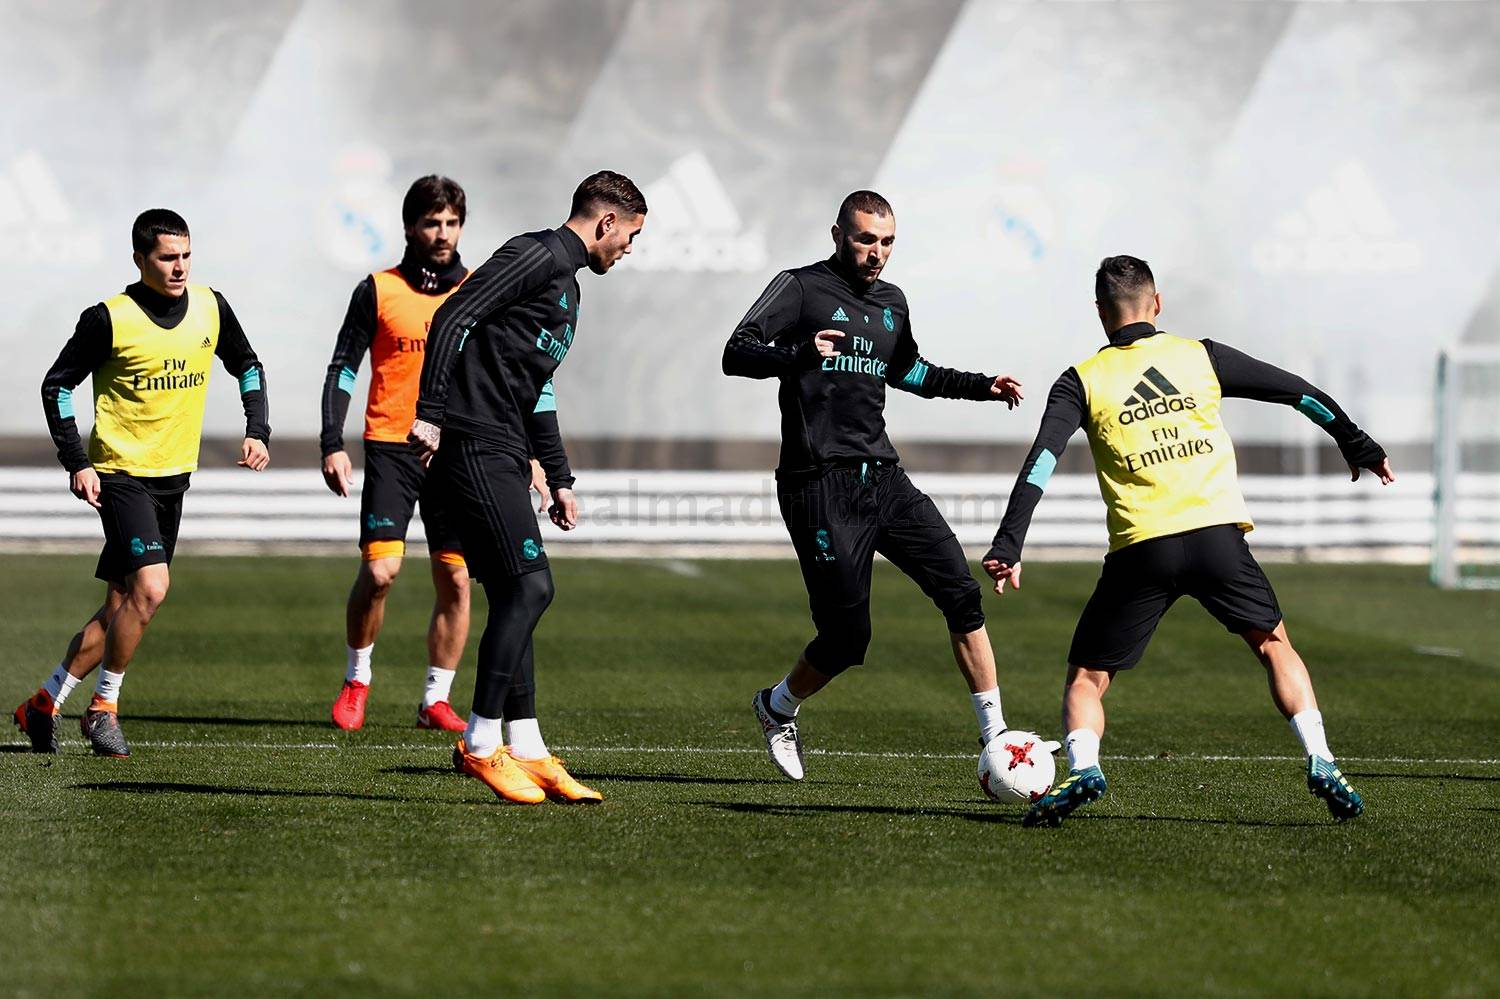 Real Madrid - Entrenamiento del Real Madrid - 22-03-2018